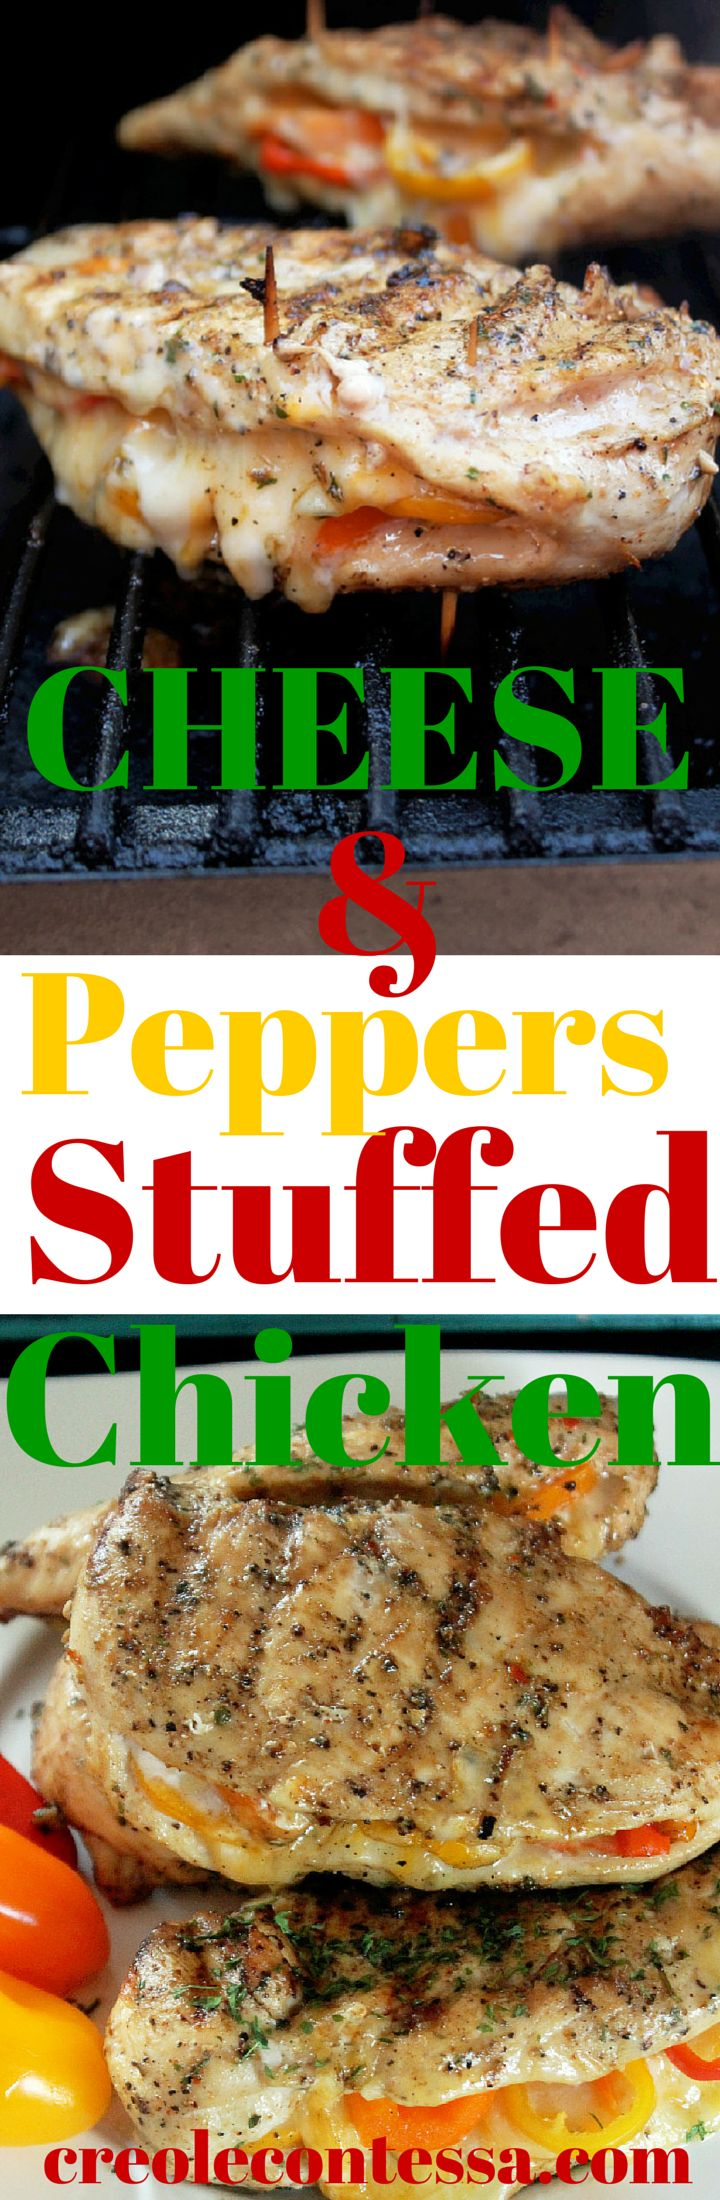 Grilled Chicken Stuffed with Cheese & Peppers-Creole Contessa #OXOGreenSaver…